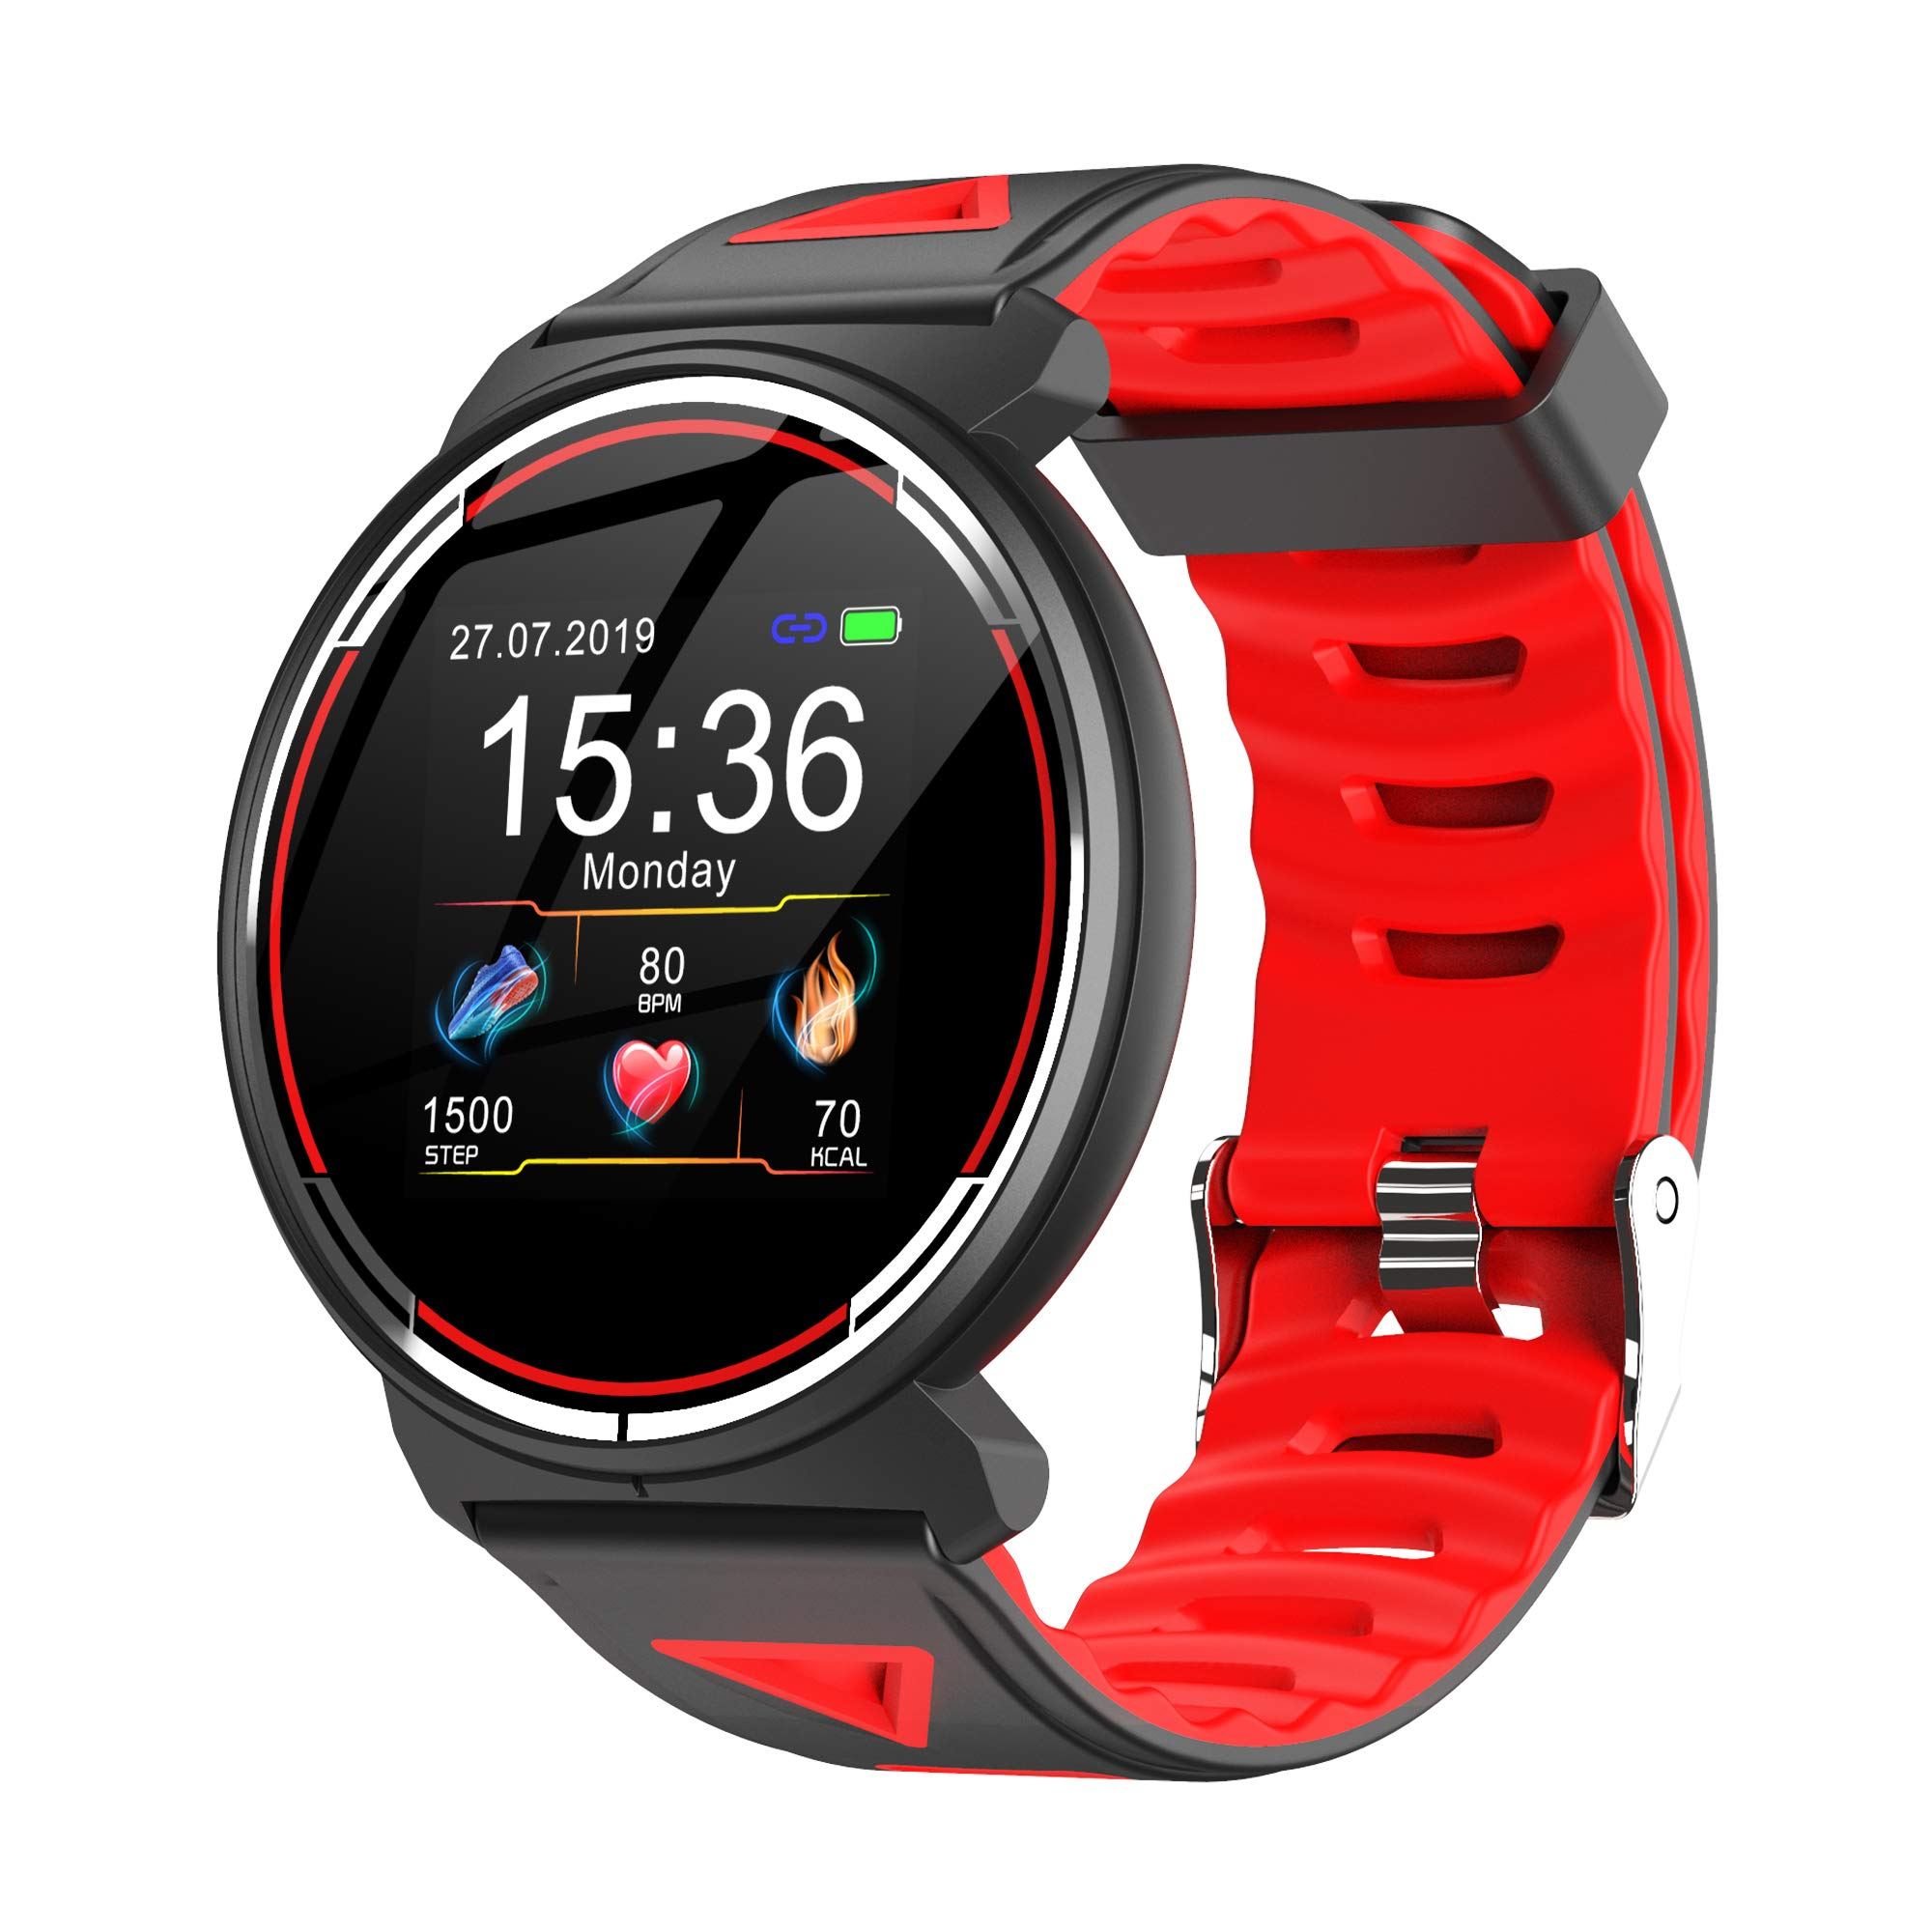 Smart Watch for Android iOS Phones, AIVEILE All-Rounder Version Activity Fitness Tracker Bluetooth Bracelet Waterproof Smartwatch with Blood Pressure Monitor Compatible Apple iPhone for Men Women by A I V E I L E